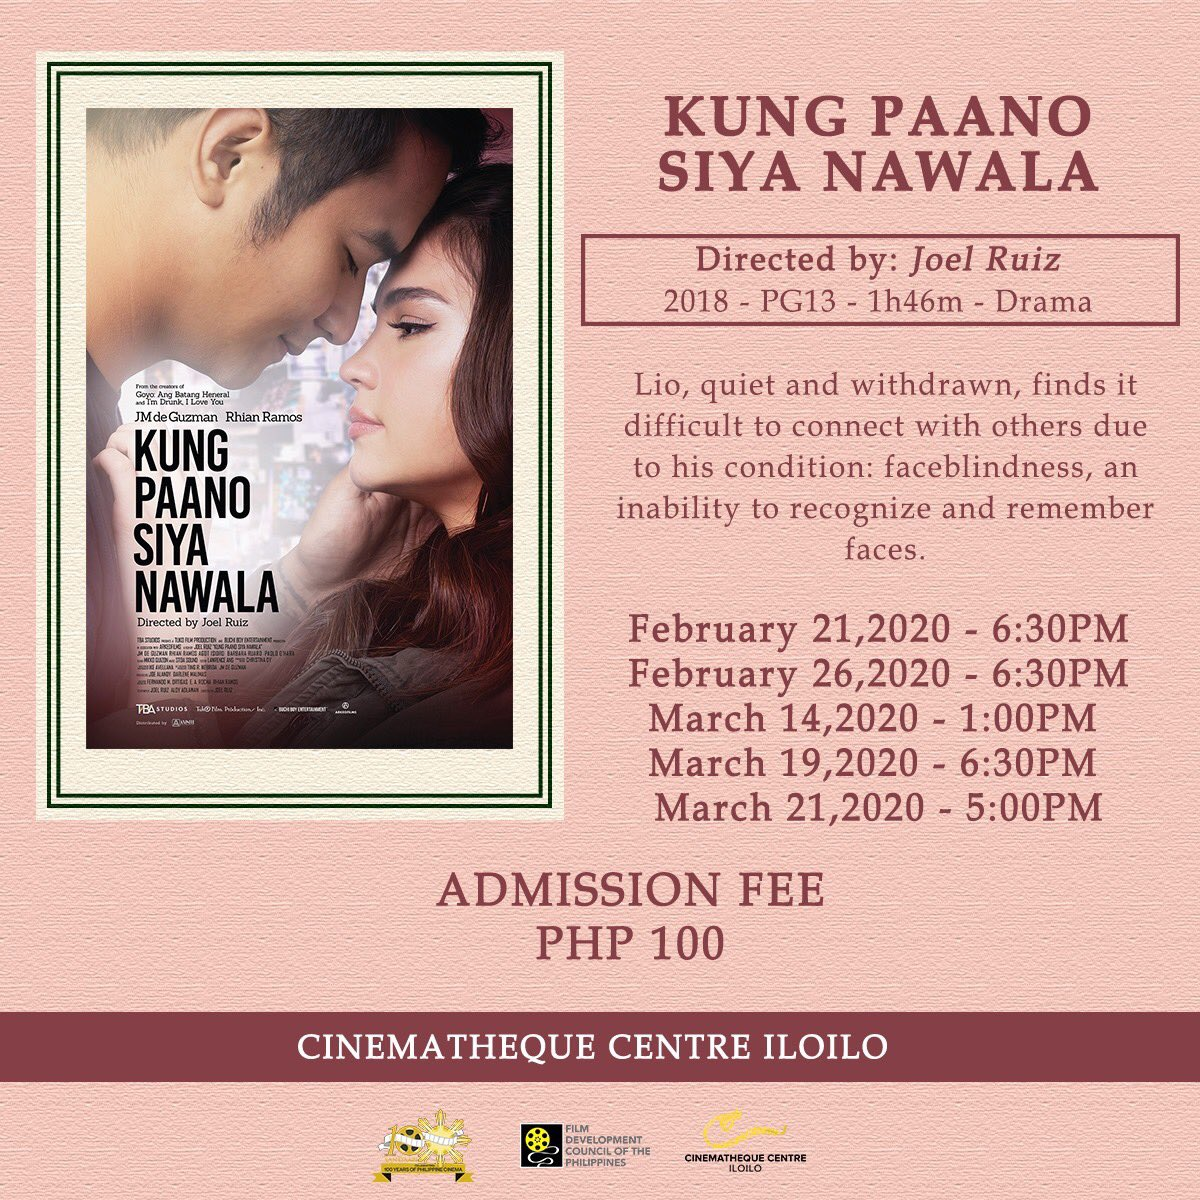 SHOWING TODAY   Kung Paano Siya Nawala - February 26, 2020 I 630PM  PHP 100.00 admission fee  See you at Cinematheque Centre Iloilo! #FDCP #Cinematheque #Iloilo #CinemathequeCentreIloilopic.twitter.com/JaKl2Pbi8T